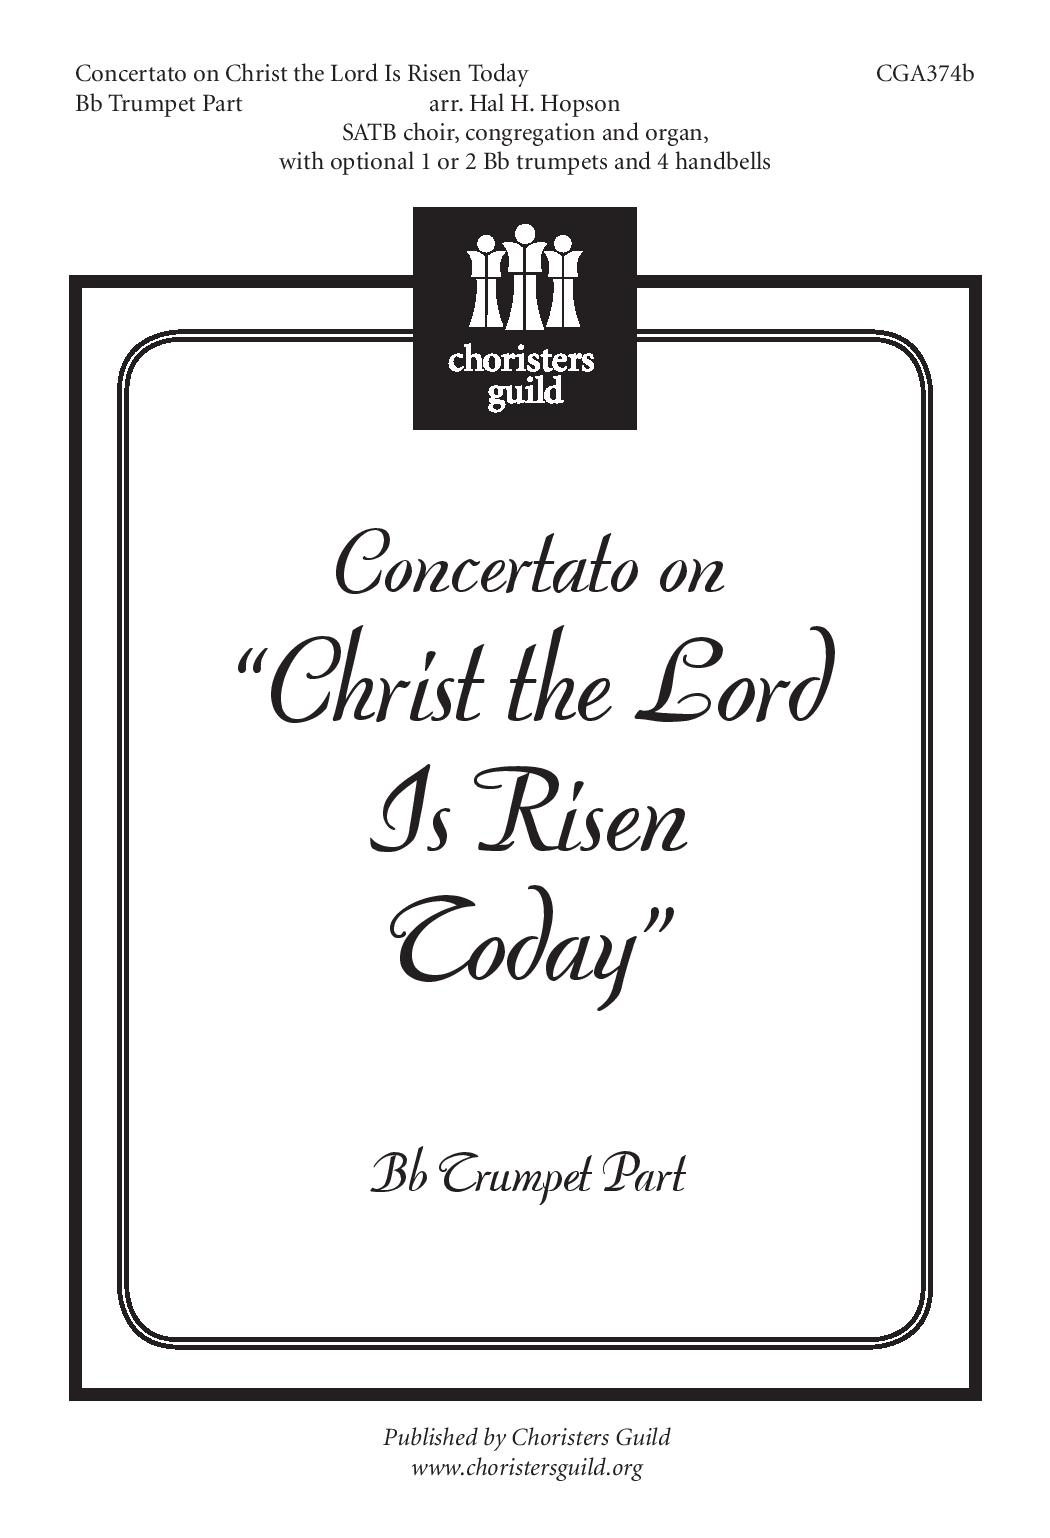 Concertato on 'Christ the Lord is Risen Today' Trumpet Part